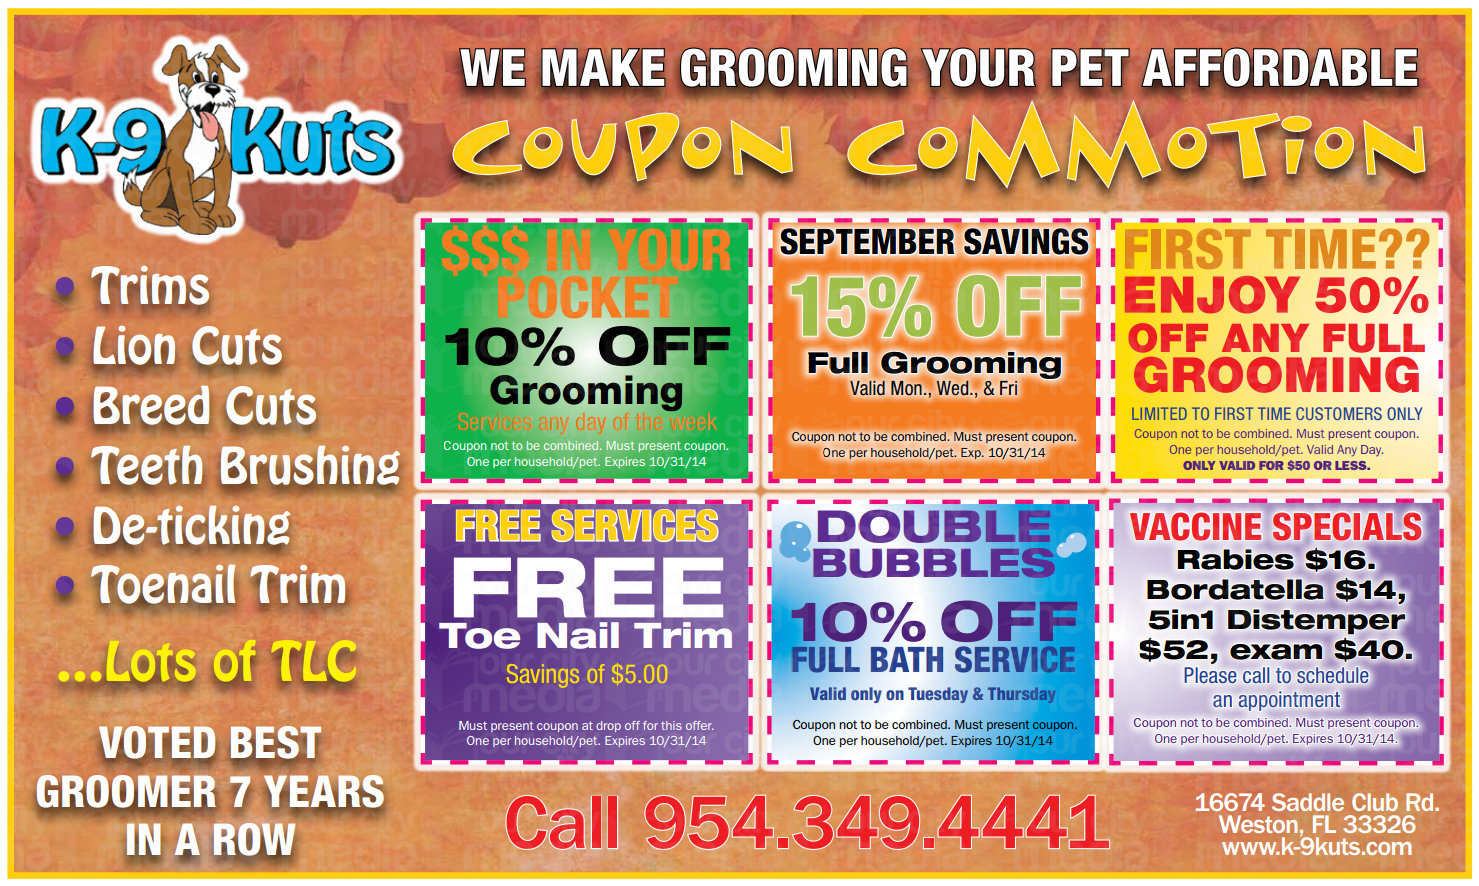 k-9 kuts affordable weston dog groomer October 2014 coupons special prices